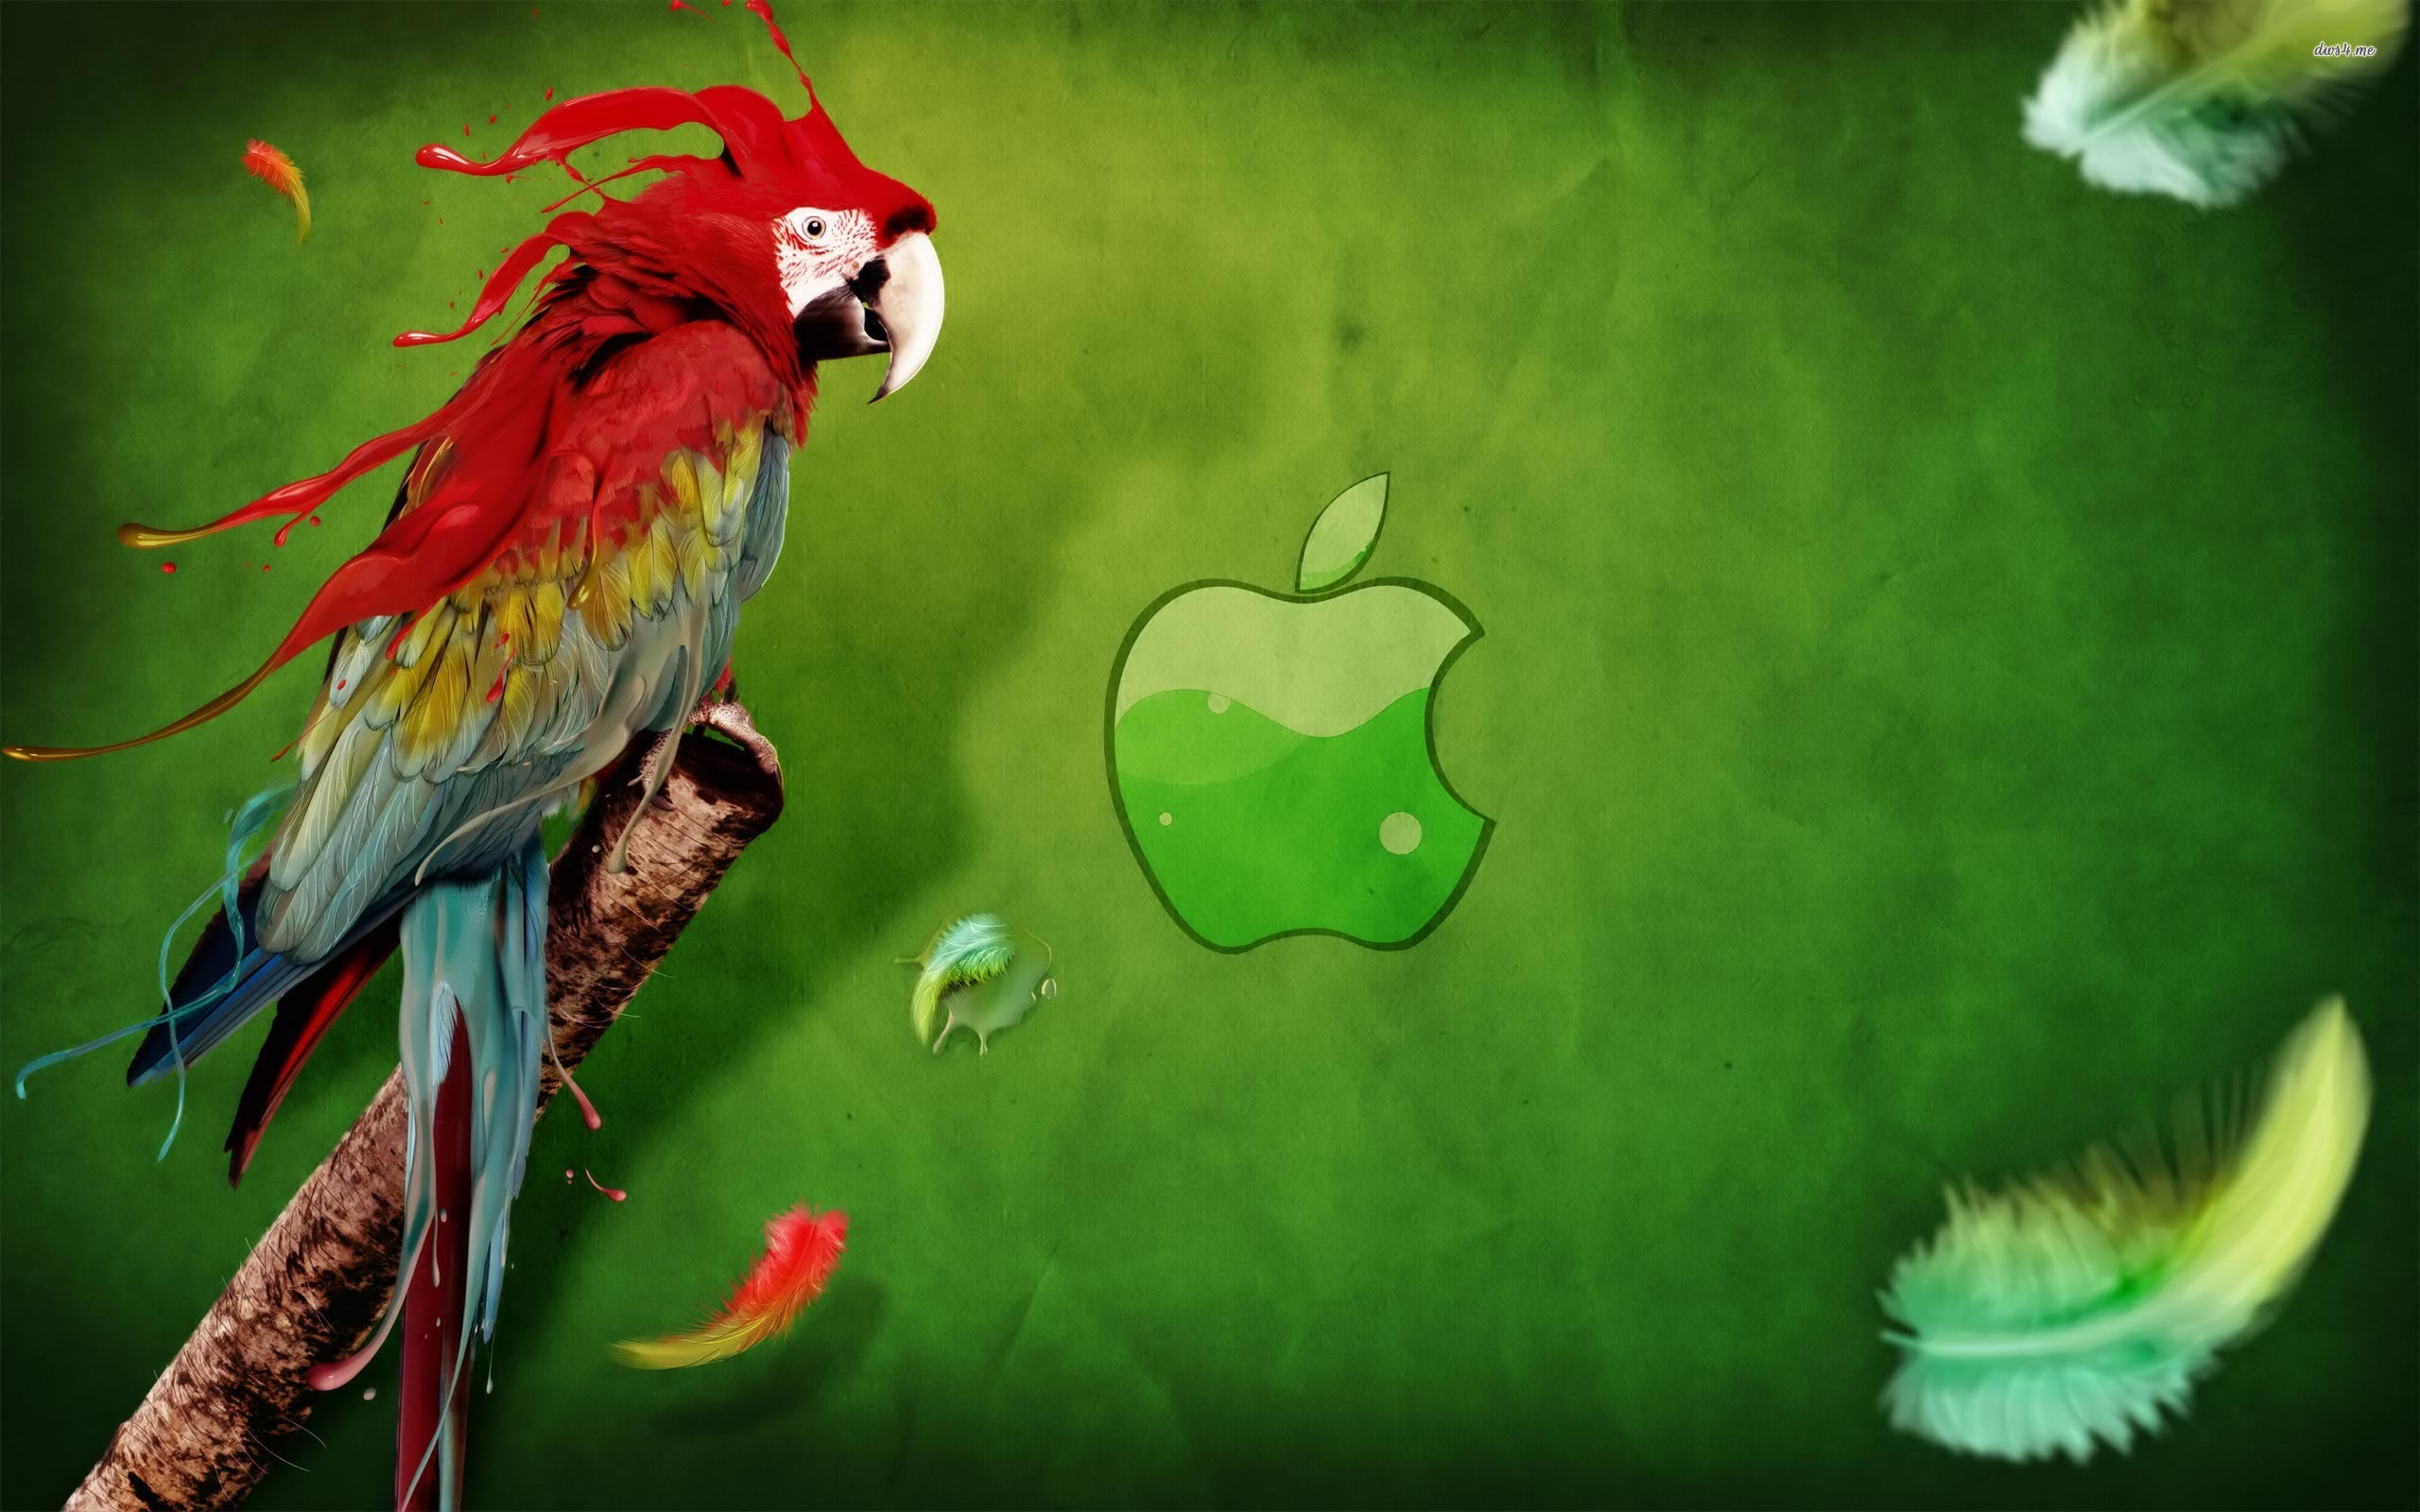 Apple Logo Wallpapers HD parrot